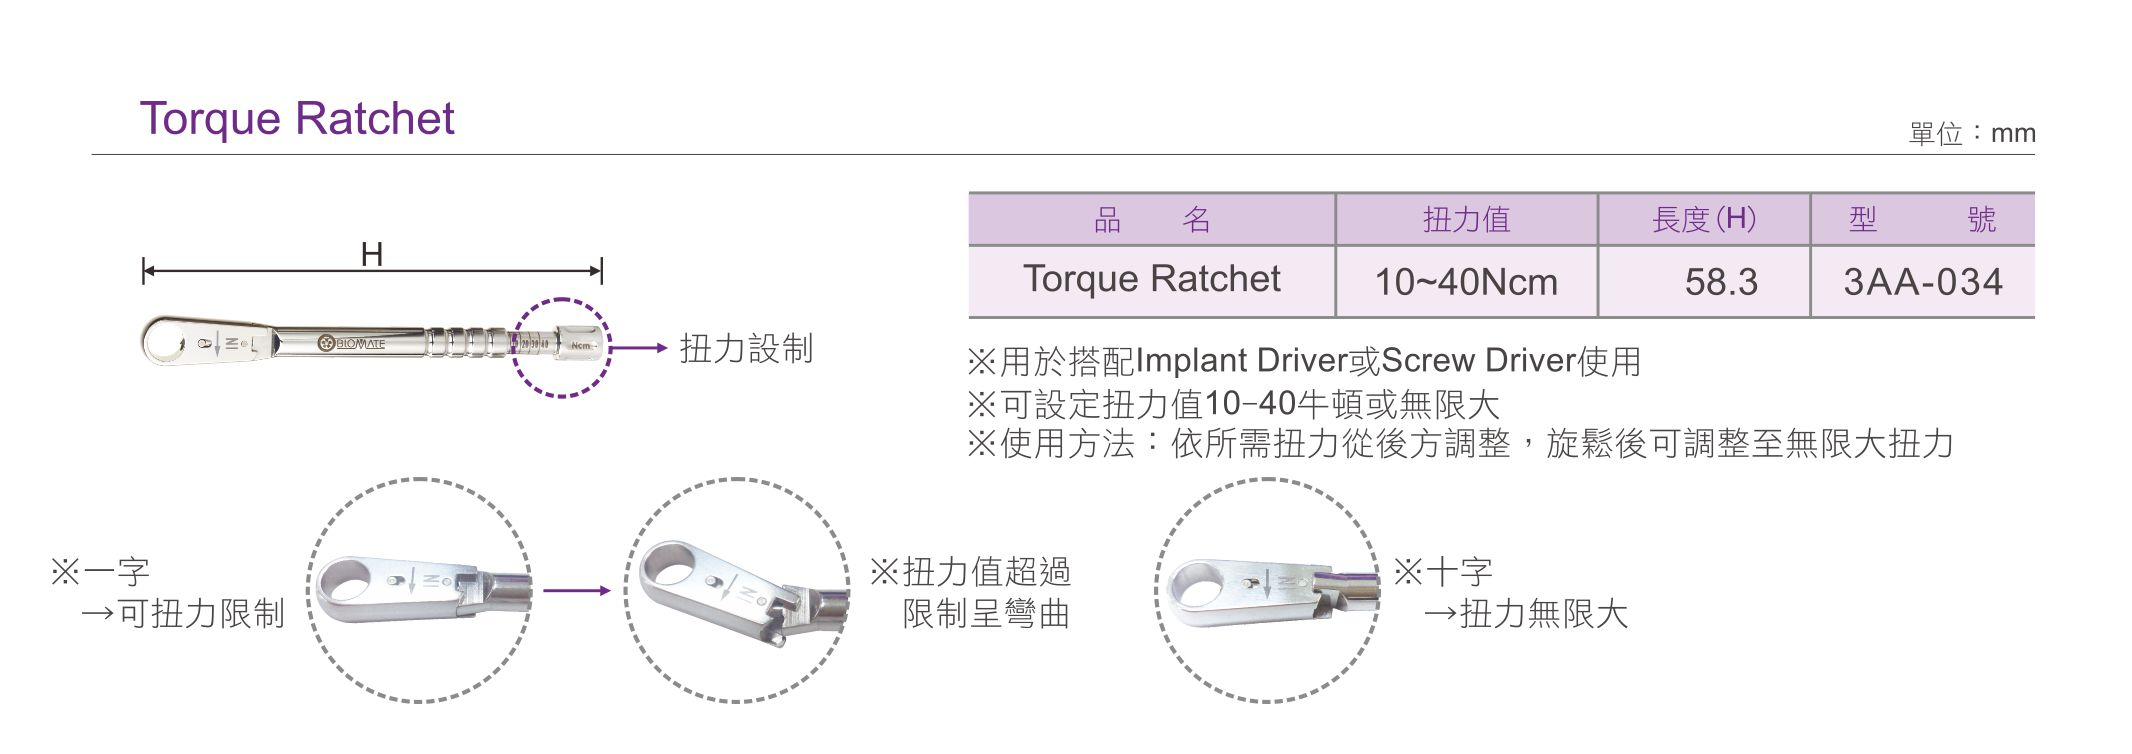 Torque Ratchet